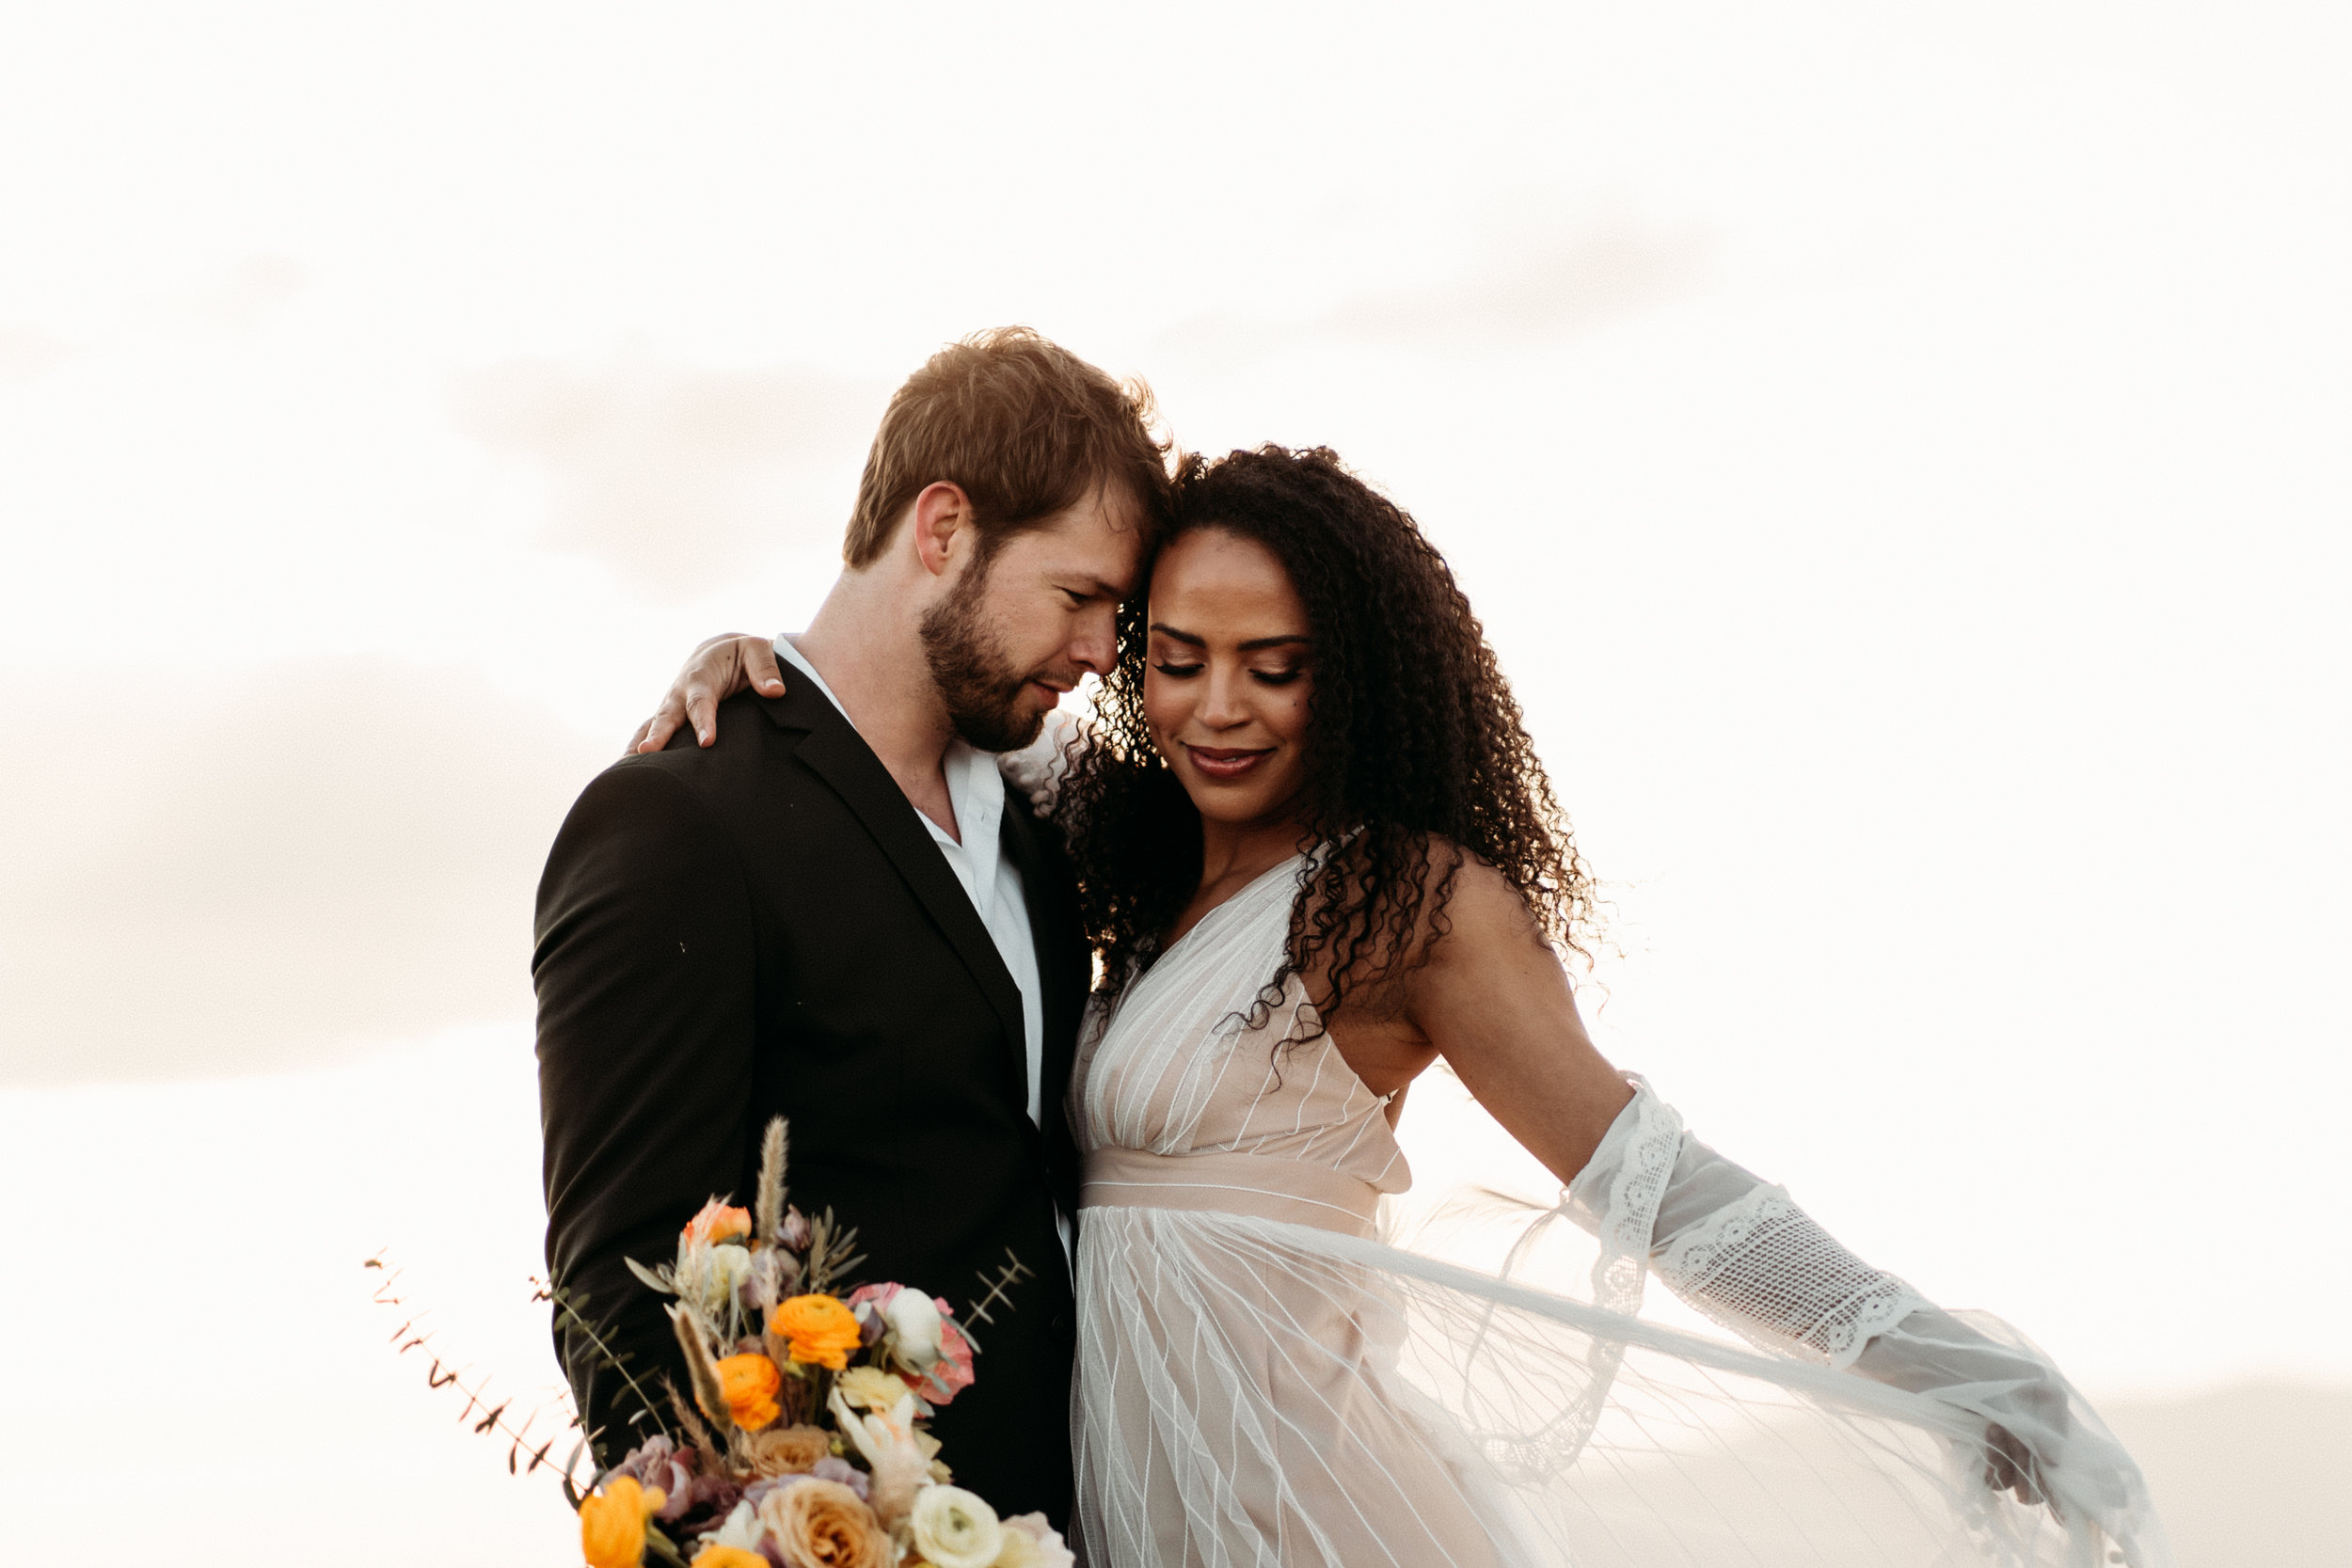 Elopements & Weddings - PACKAGES STARTING @ 1100Inquire below for my pricing guide